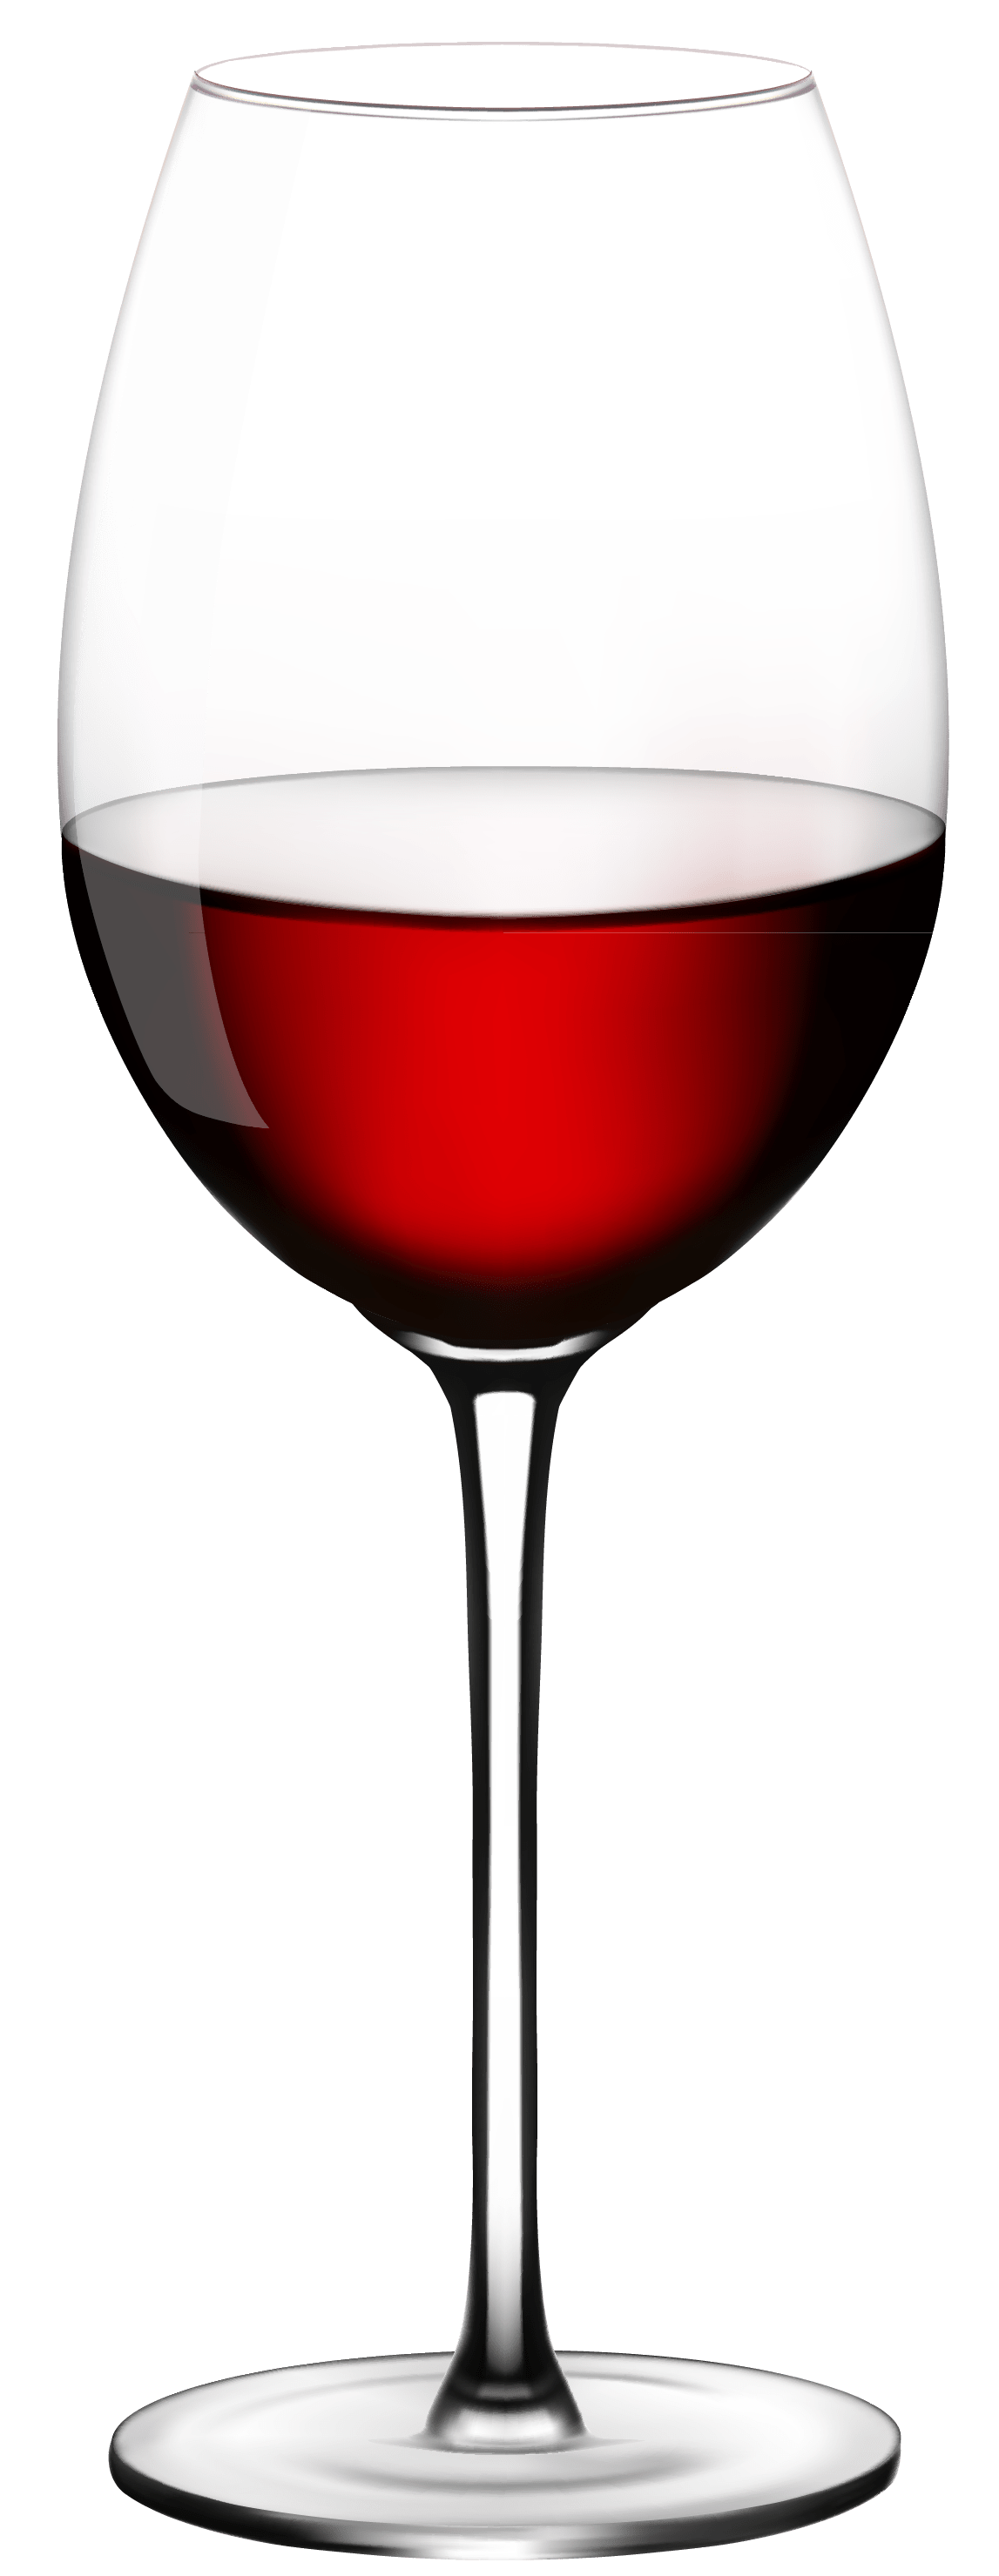 Where To Find Wine Glasses Wine Glass Clipart Best